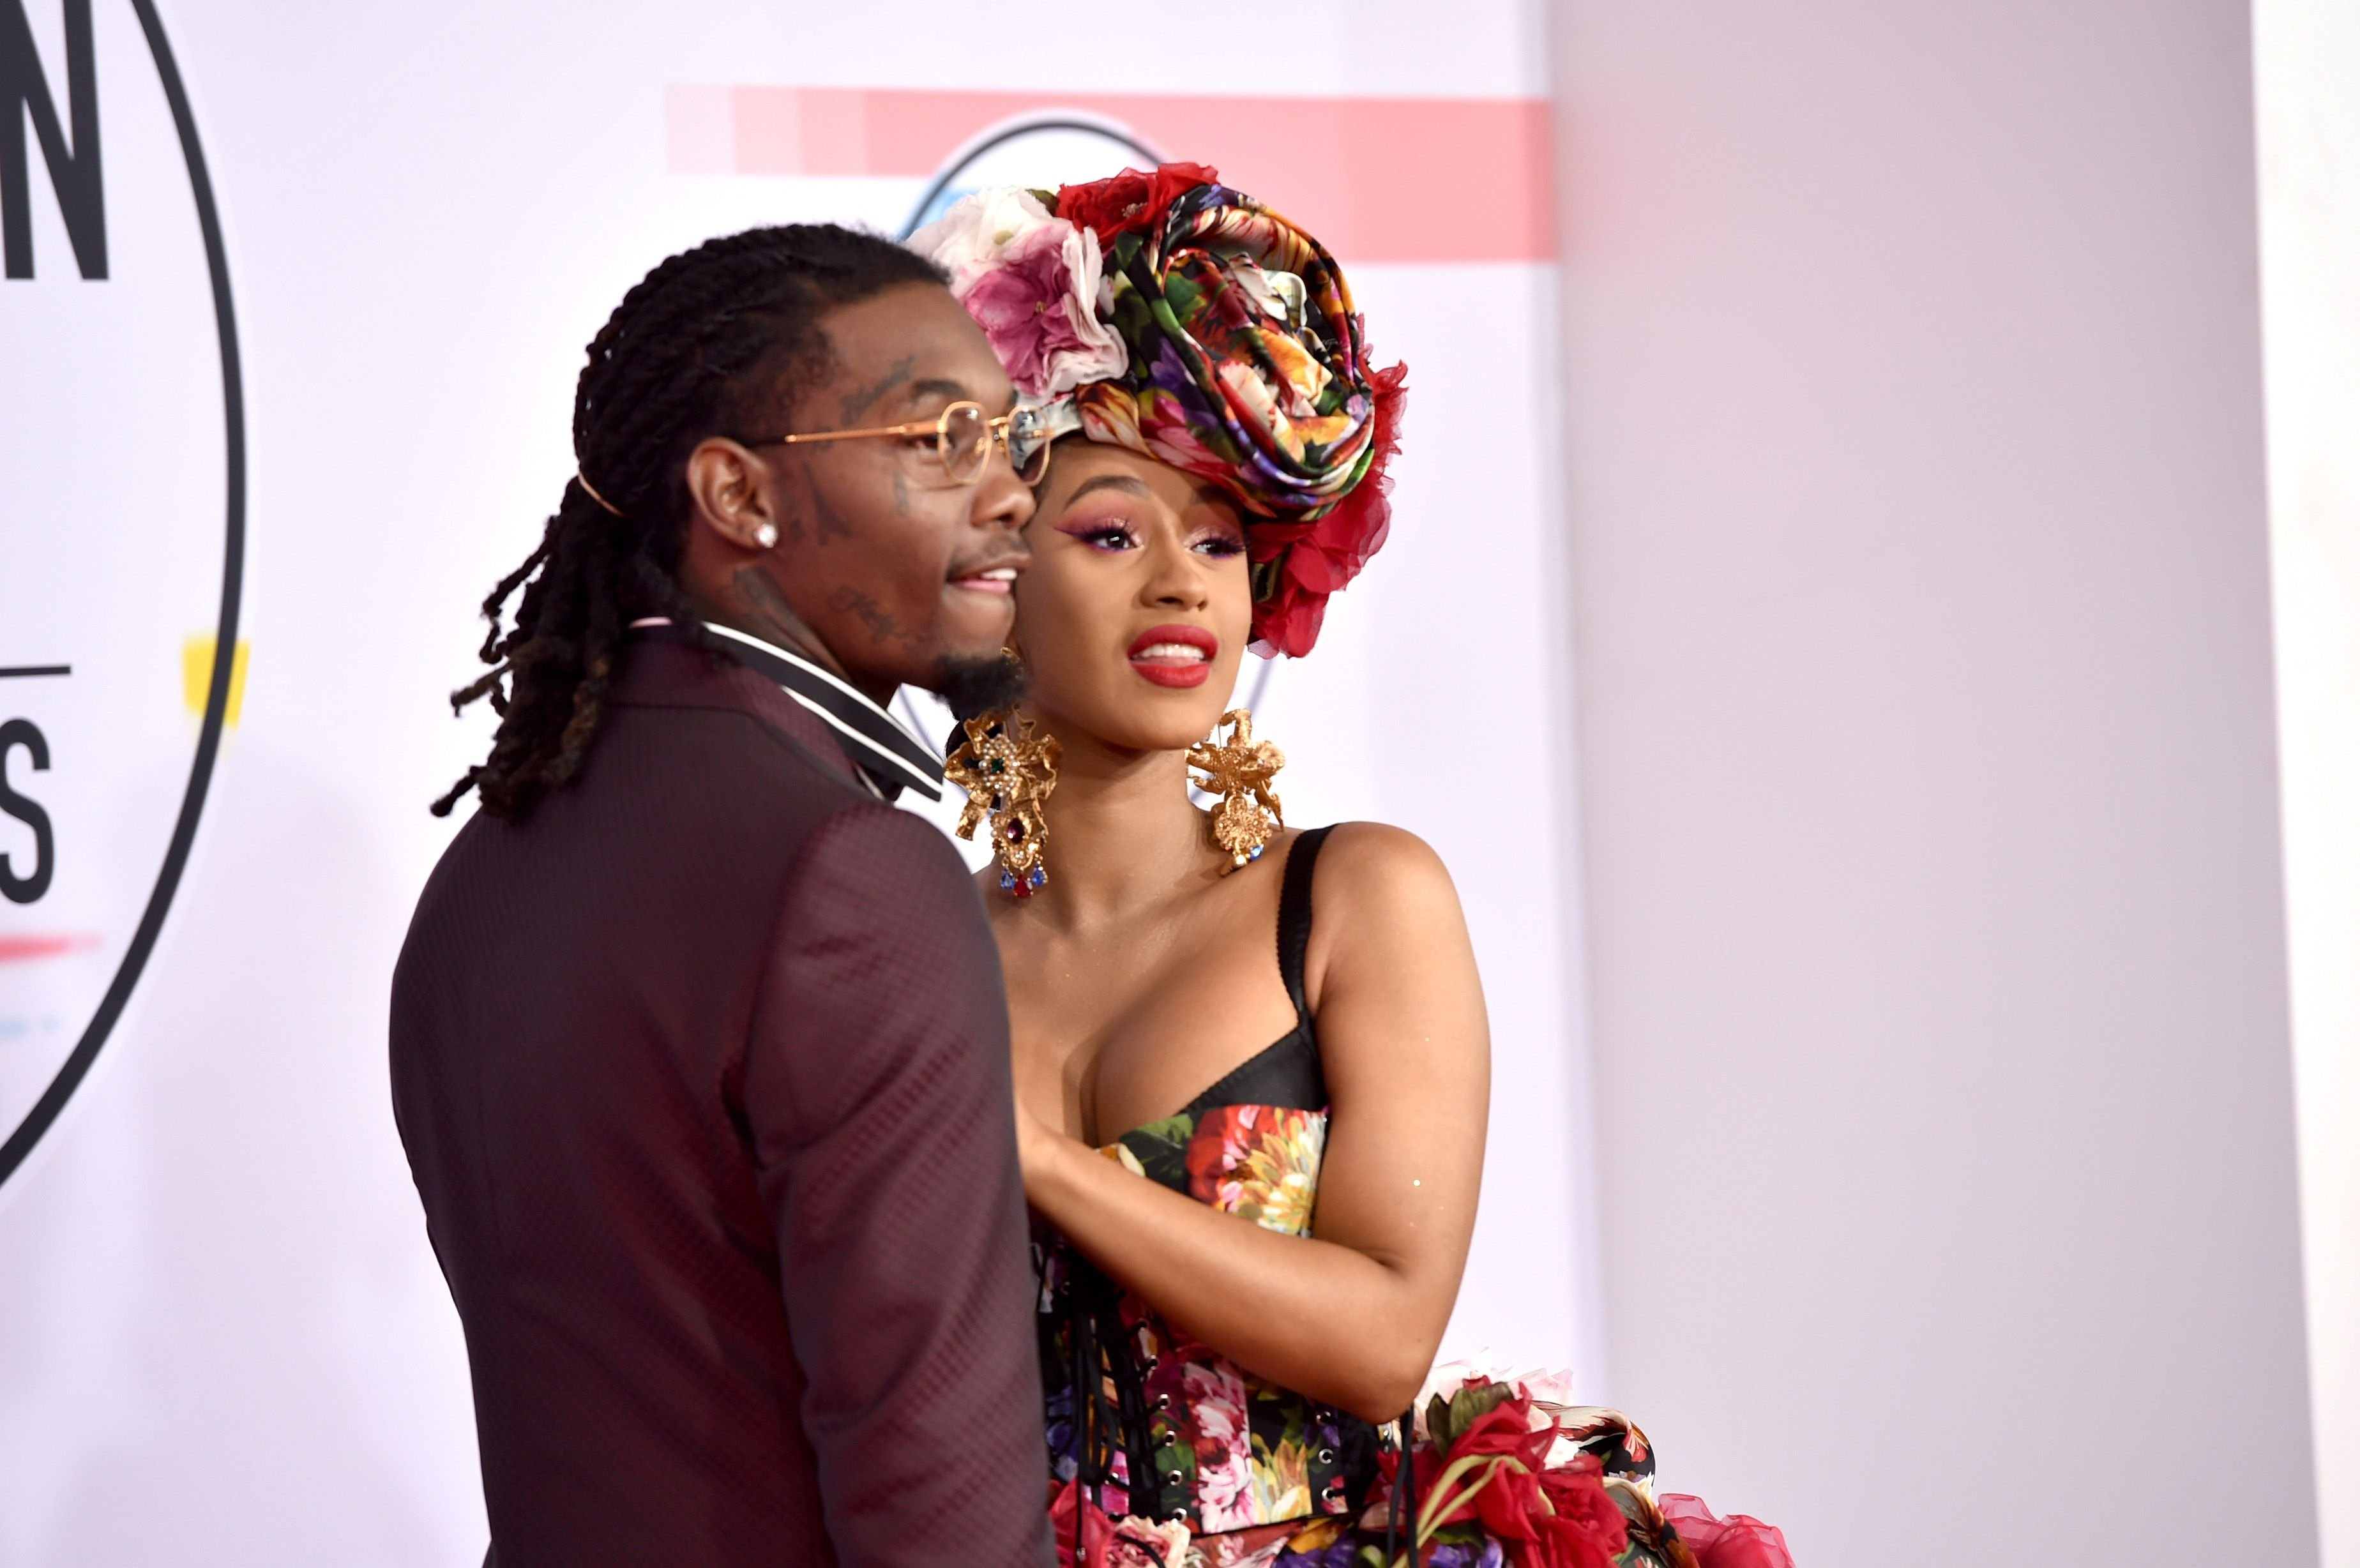 Offset and Cardi B at the American Music Awards on October 9, 2018 in Los Angeles.   Photo: Getty Images